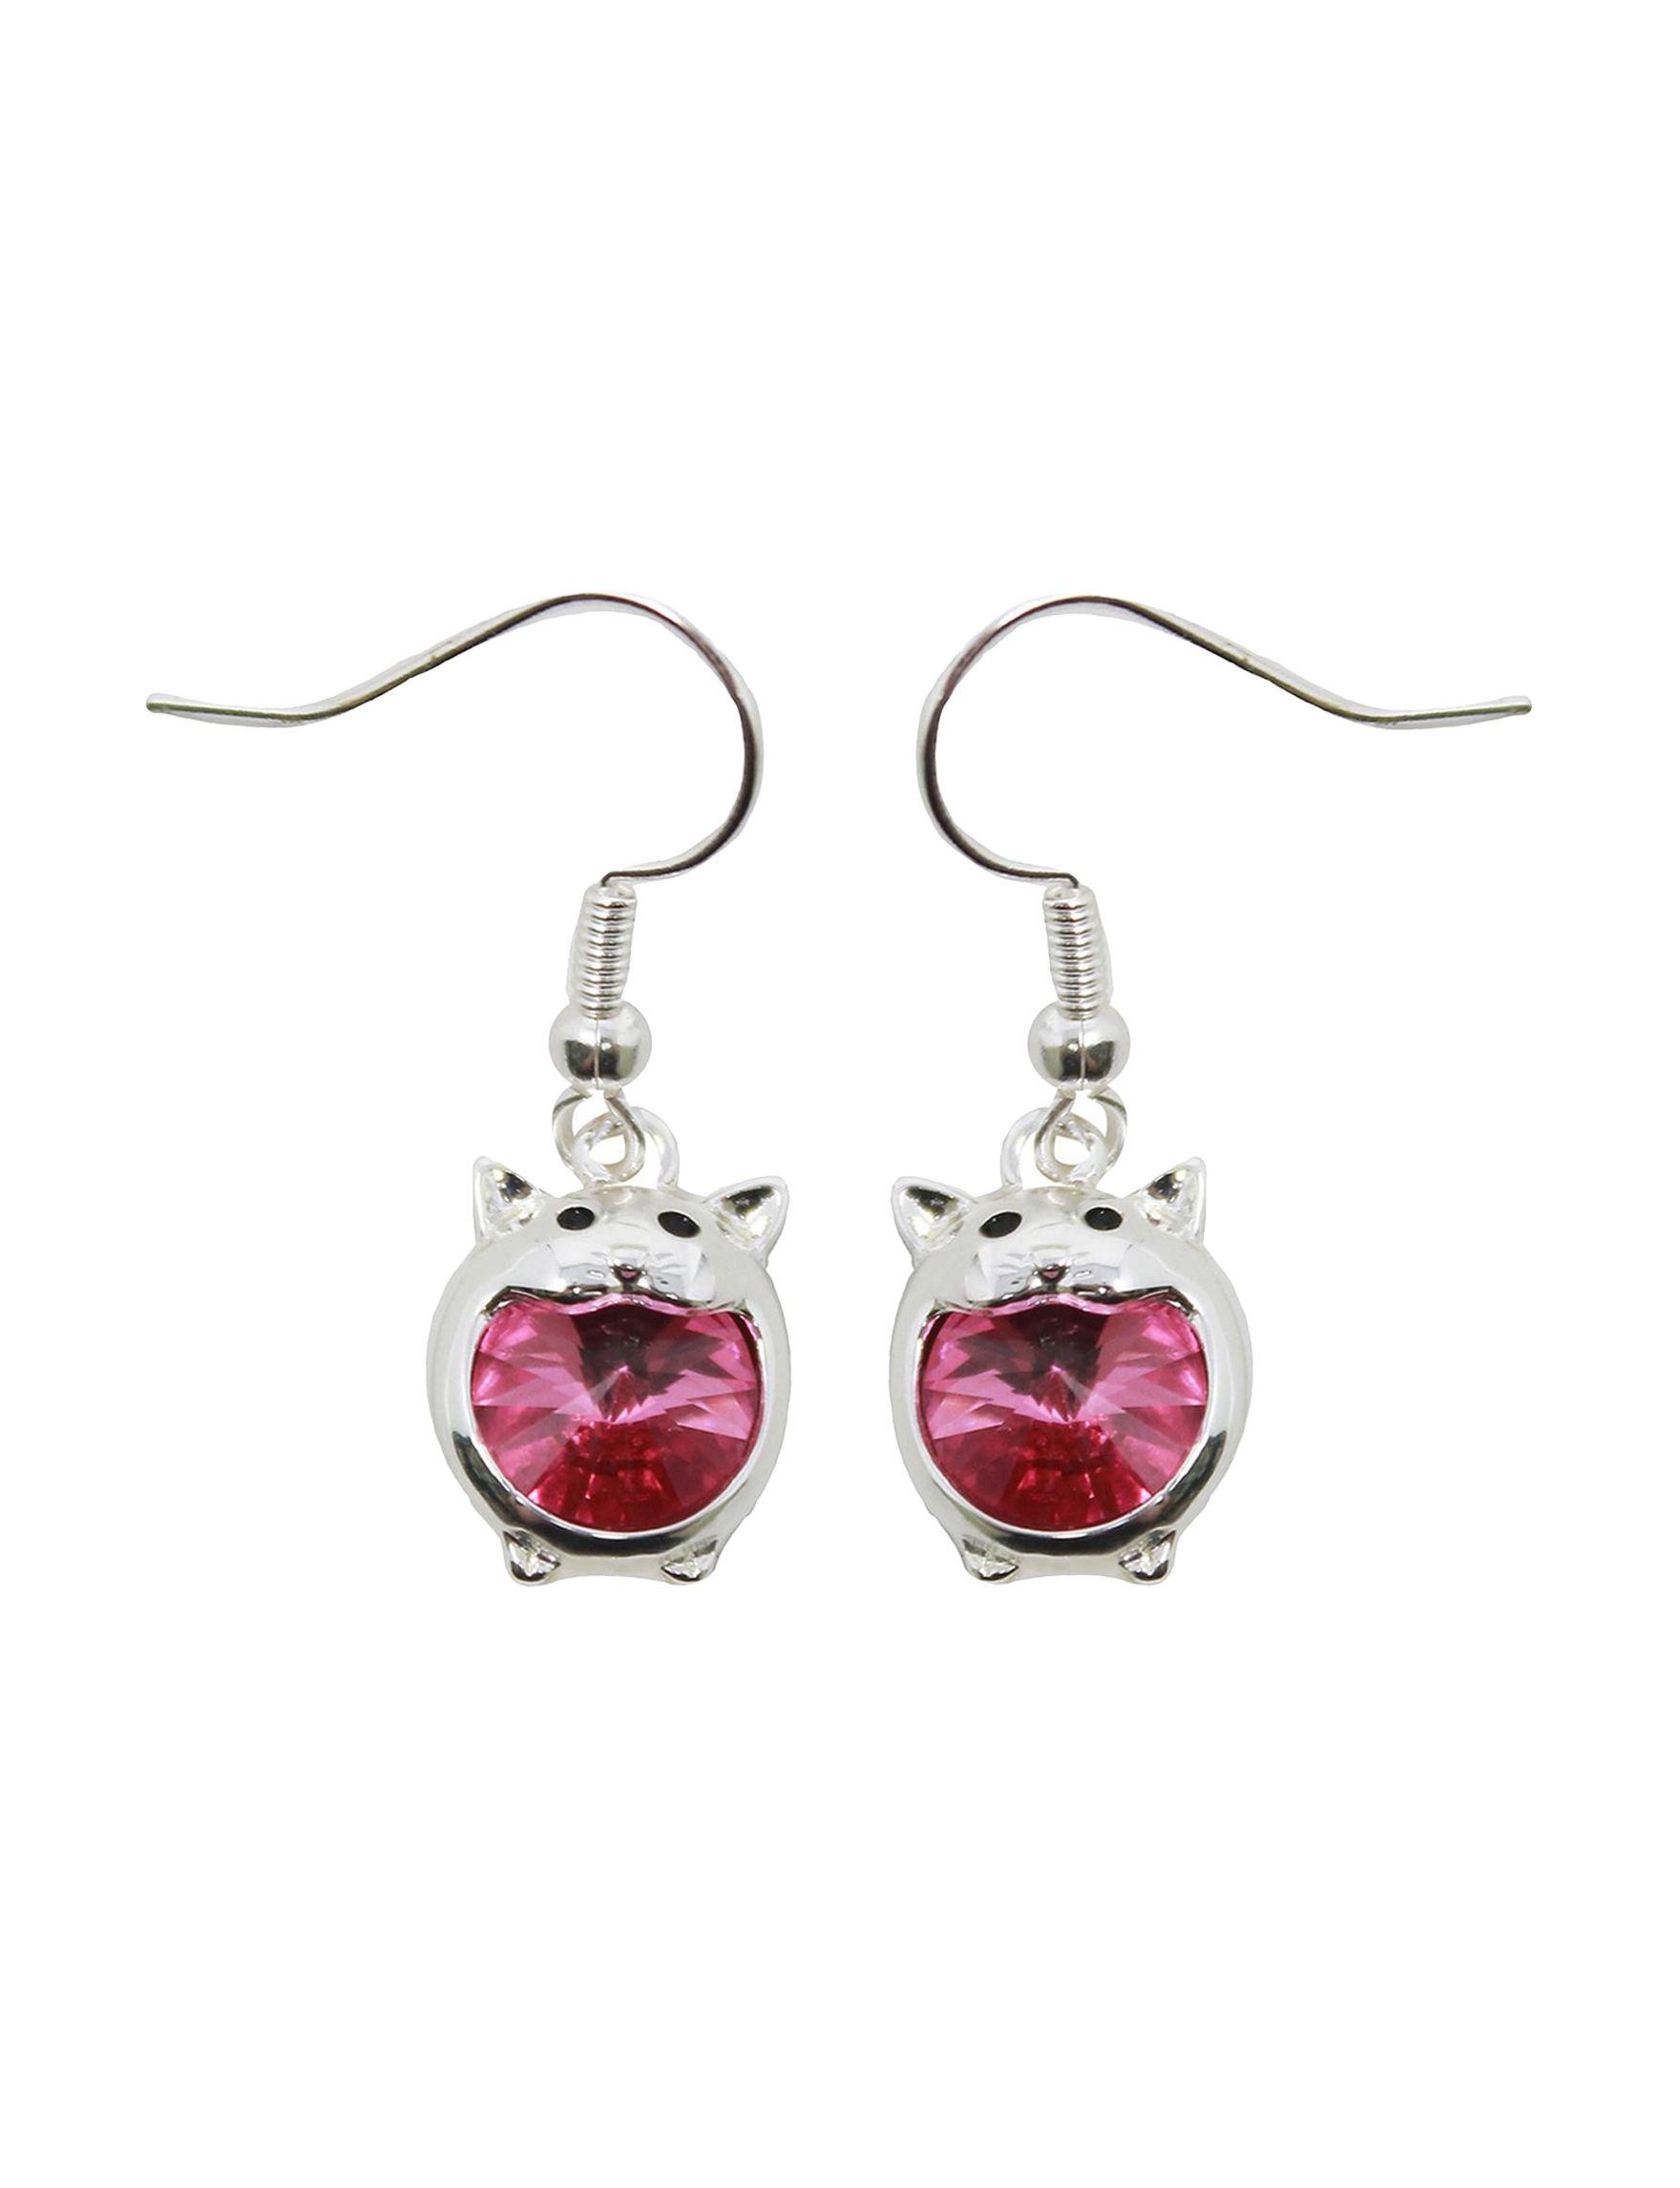 L & J Pink Crystal Drops Earrings Fine Jewelry